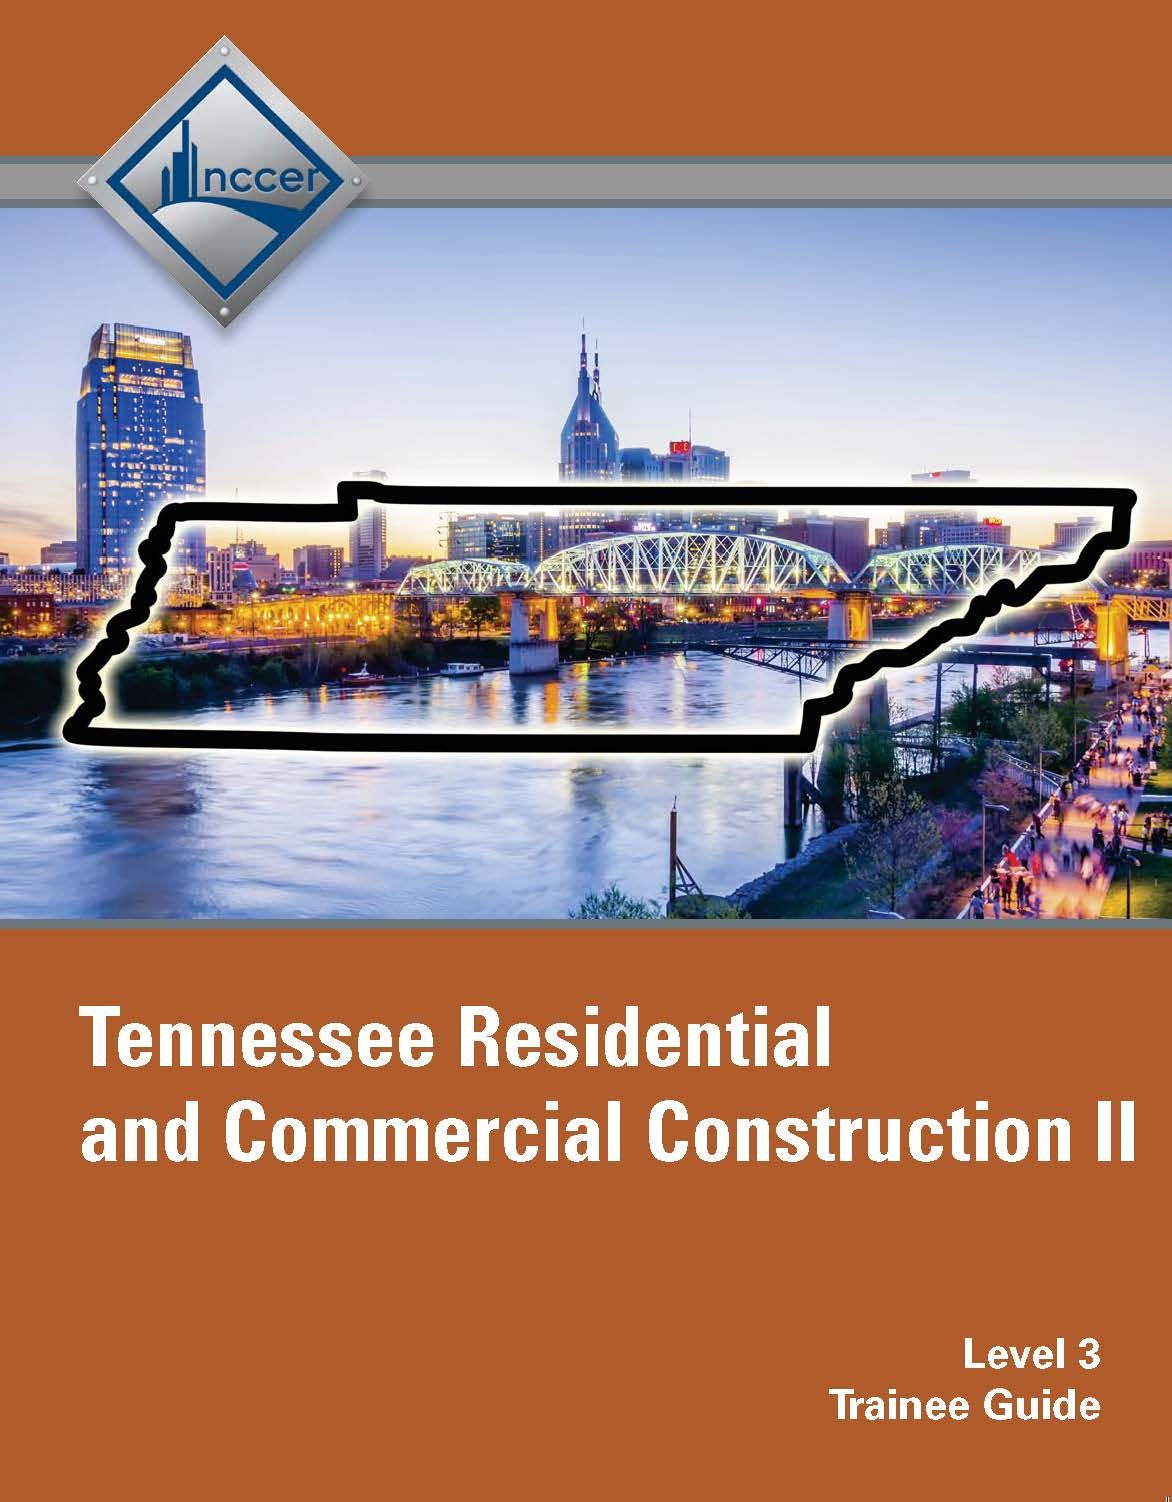 Tennessee Residential and Commercial Construction II (Level 3) Trainee Guide